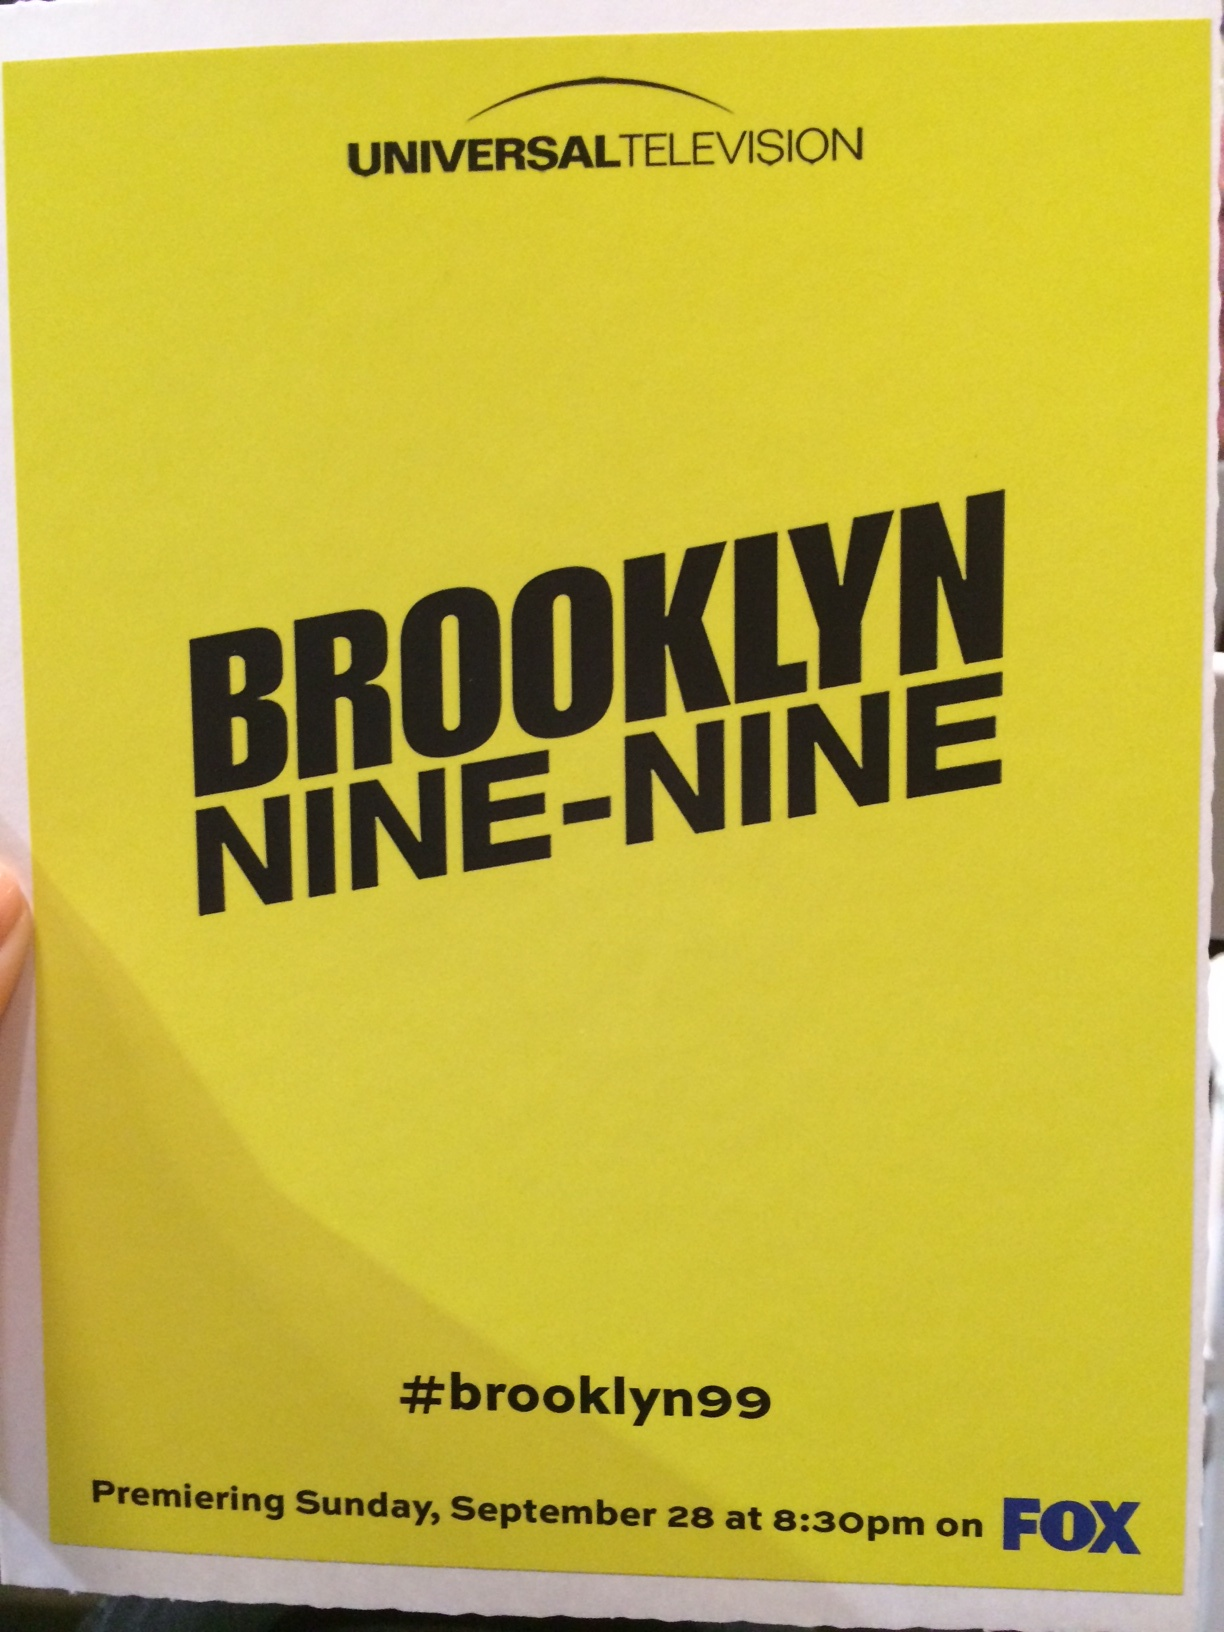 Welcome to Brooklyn Nine-Nine day at TCA!